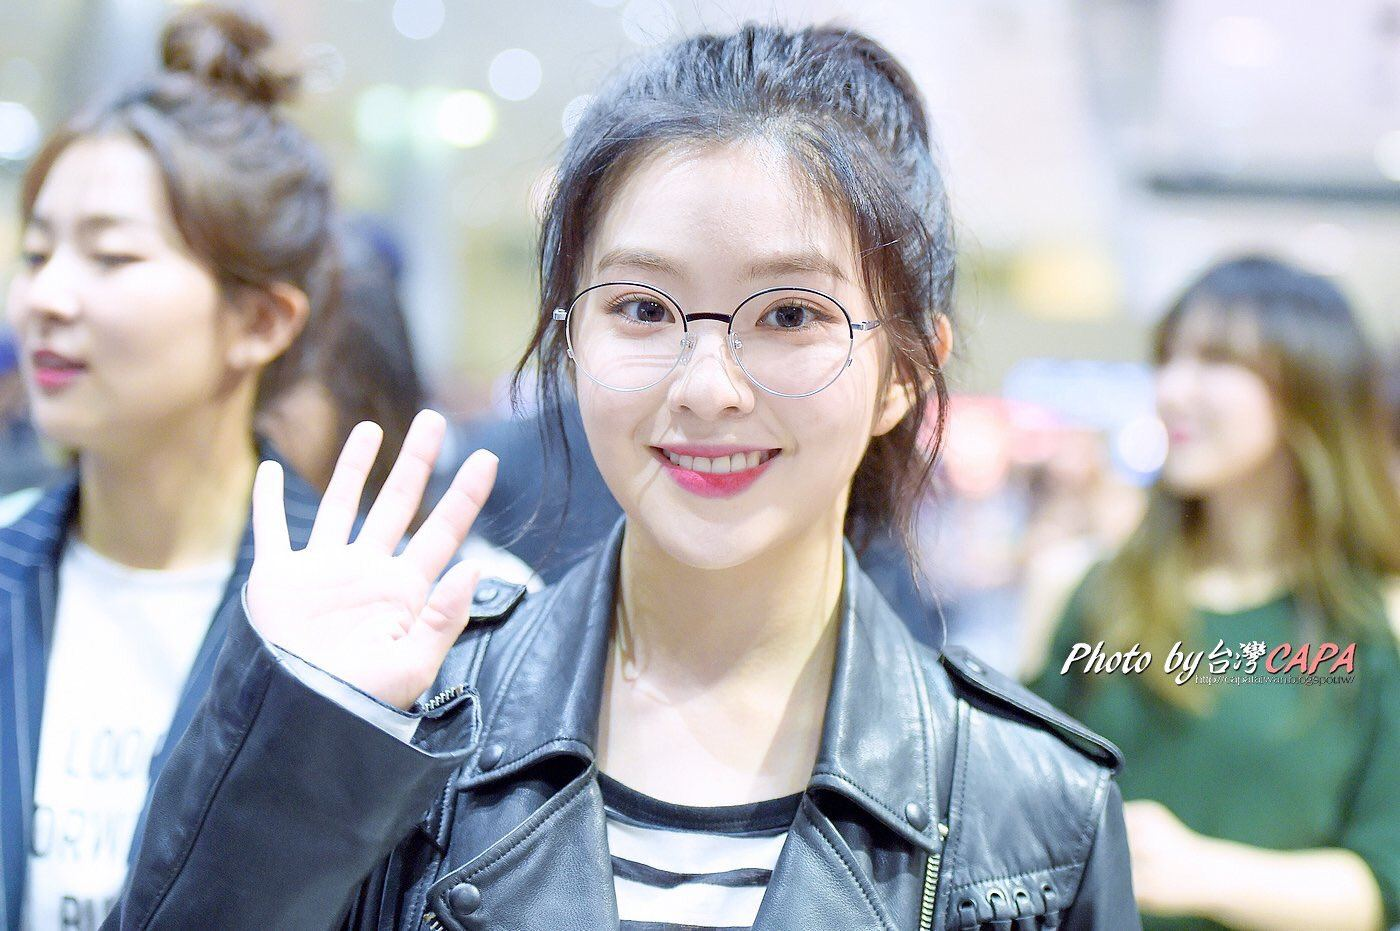 Irene looks super HOT in nerdy glasses + leather jacket